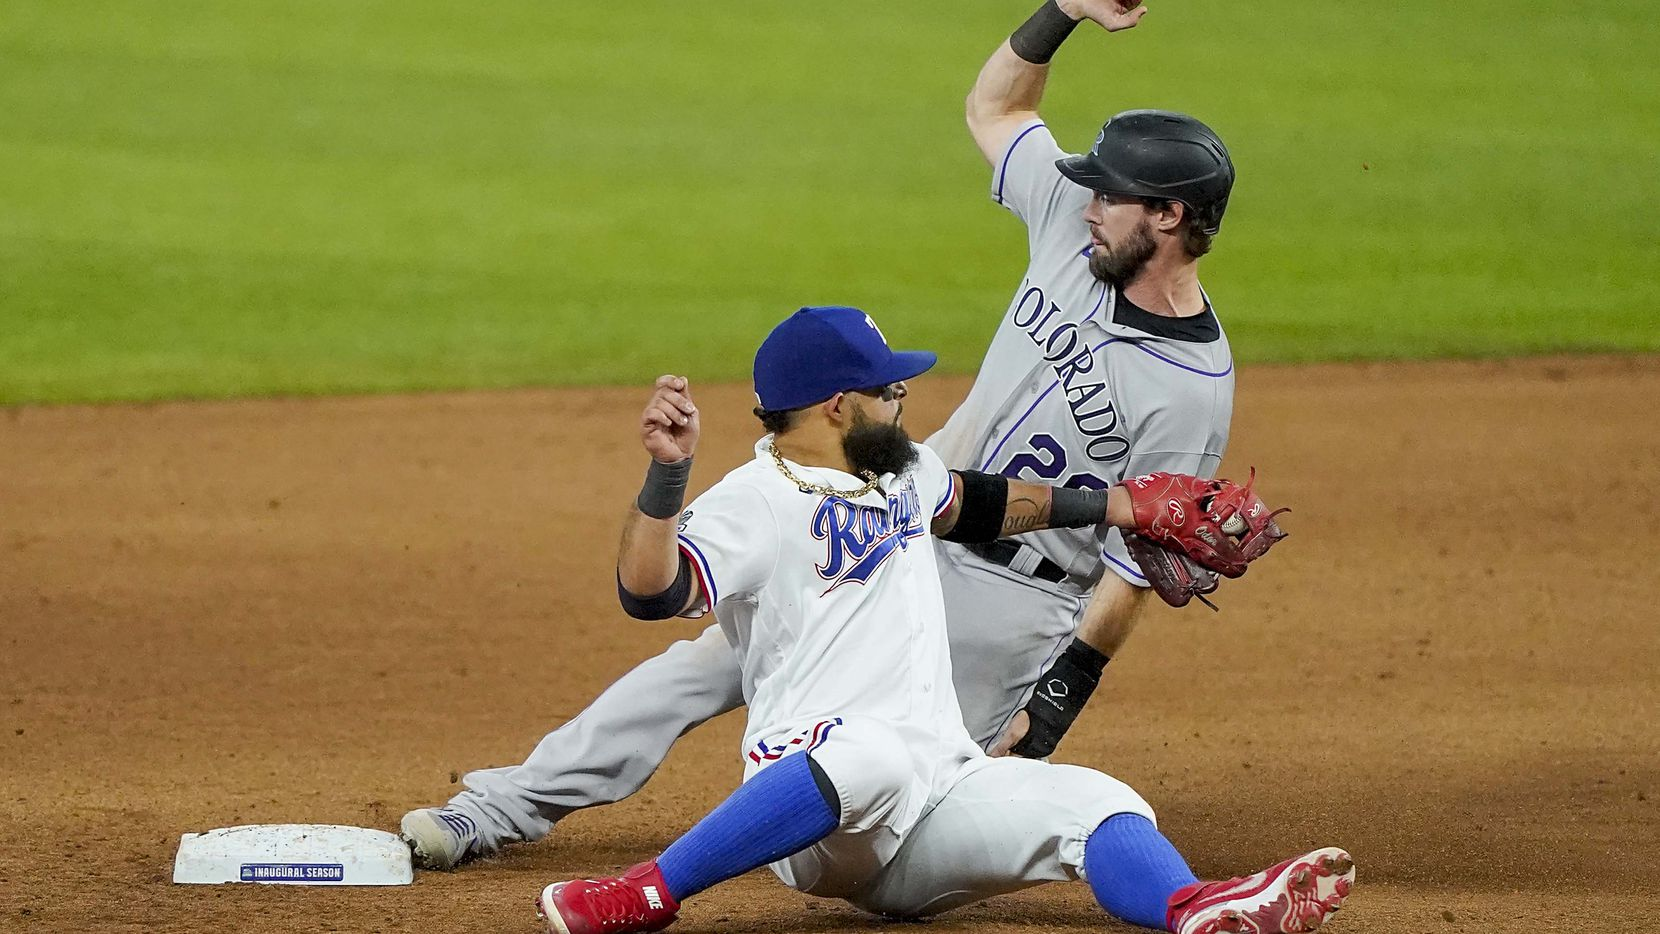 Colorado Rockies center fielder David Dahl slides past the tag from Texas Rangers second baseman Rougned Odor for a stolen base during the ninth inning at Globe Life Field on Saturday, July 25, 2020.